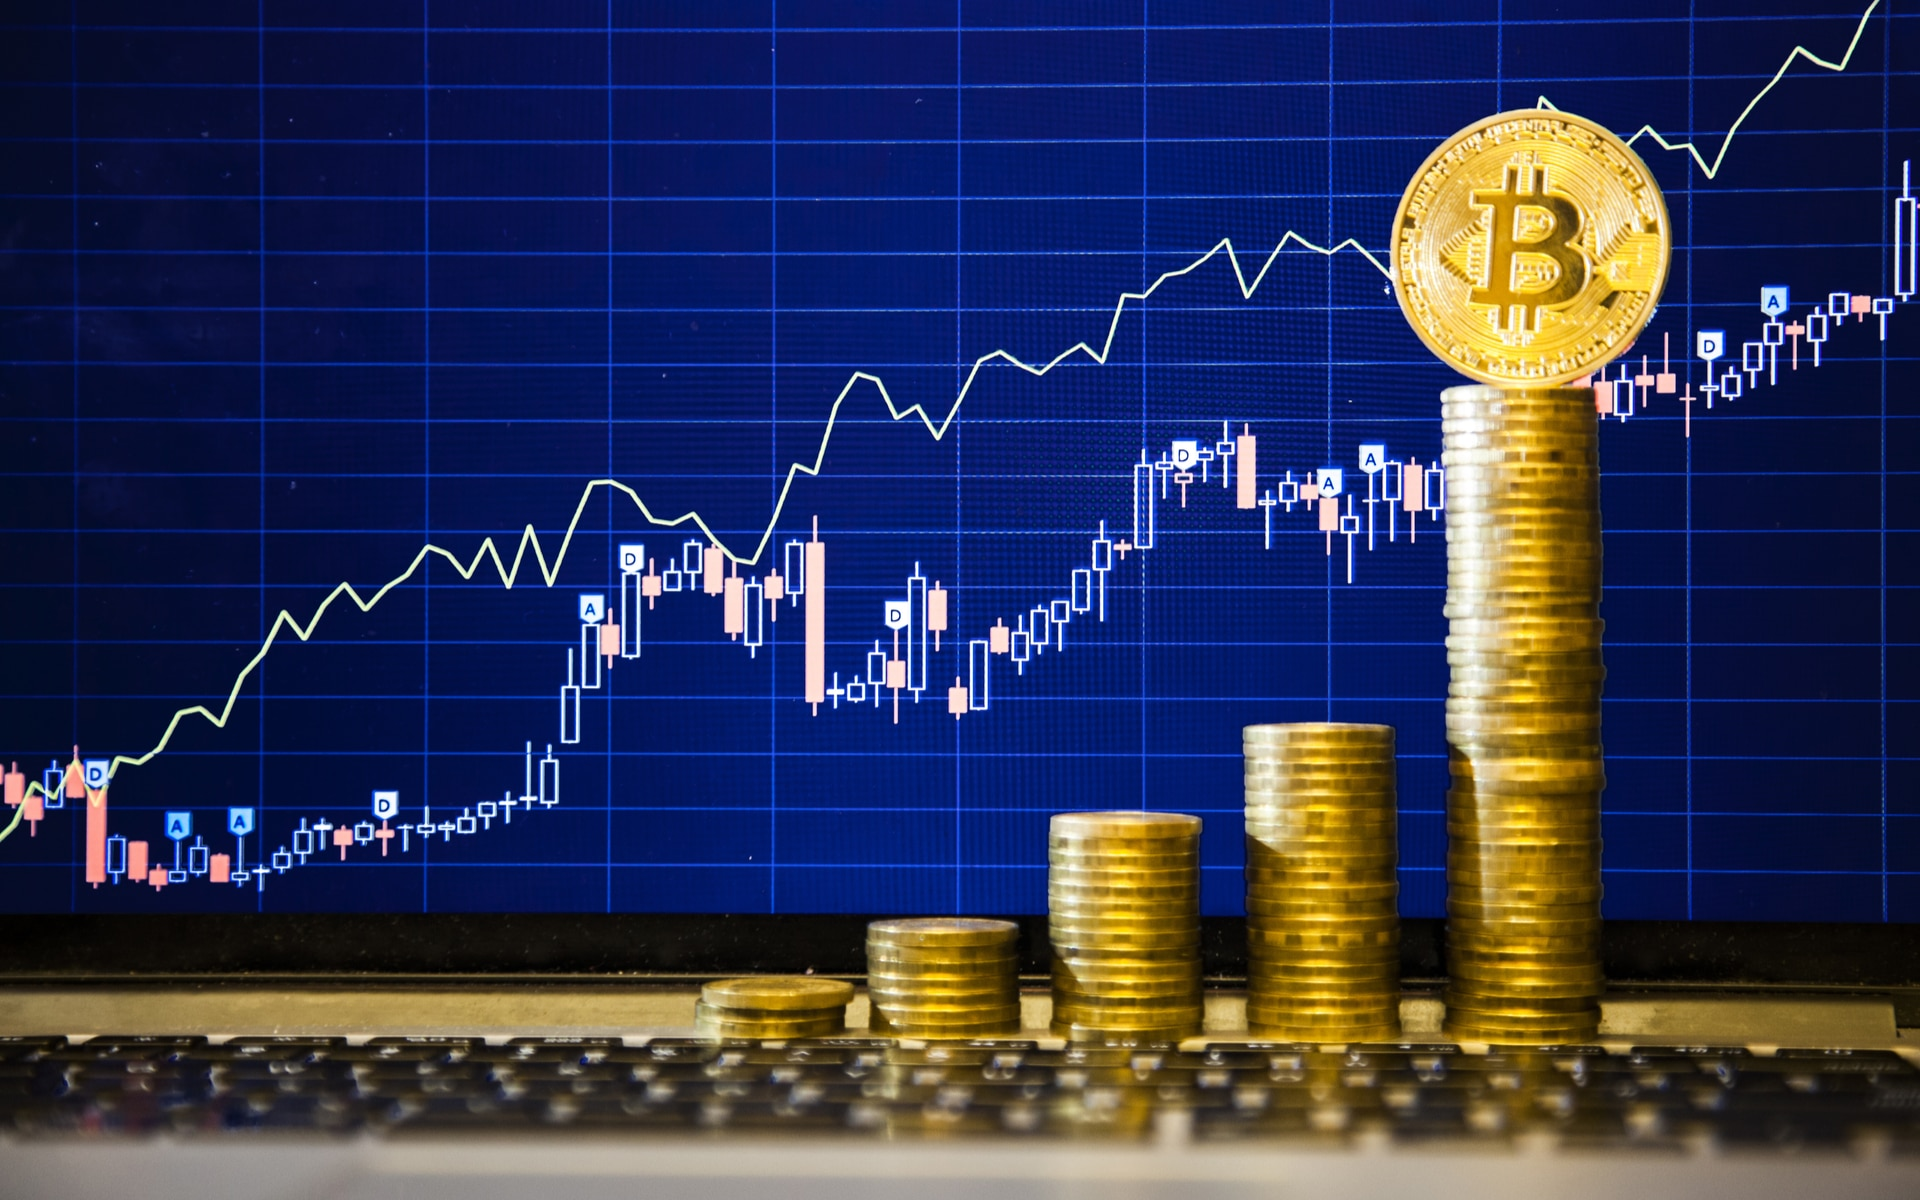 Trading Bitcoin: guida completa su come Investire - residencevallelonga.it